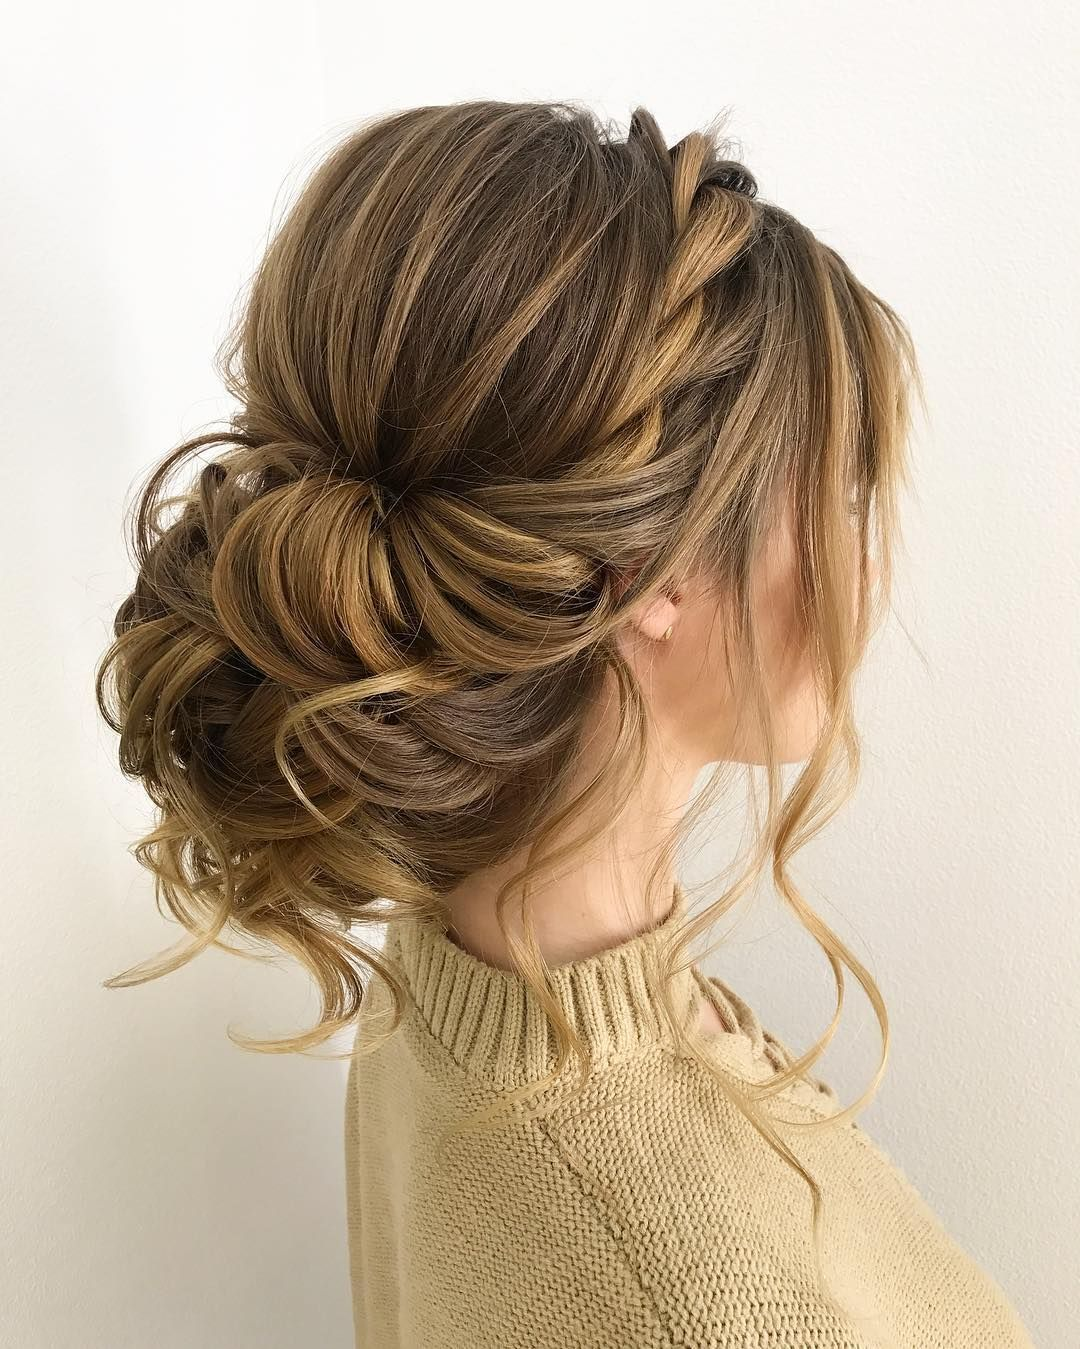 Wedding Hairstyles Medium Hair Gorgeous Wedding Updo Hairstyles That Will Wow Your Big Day